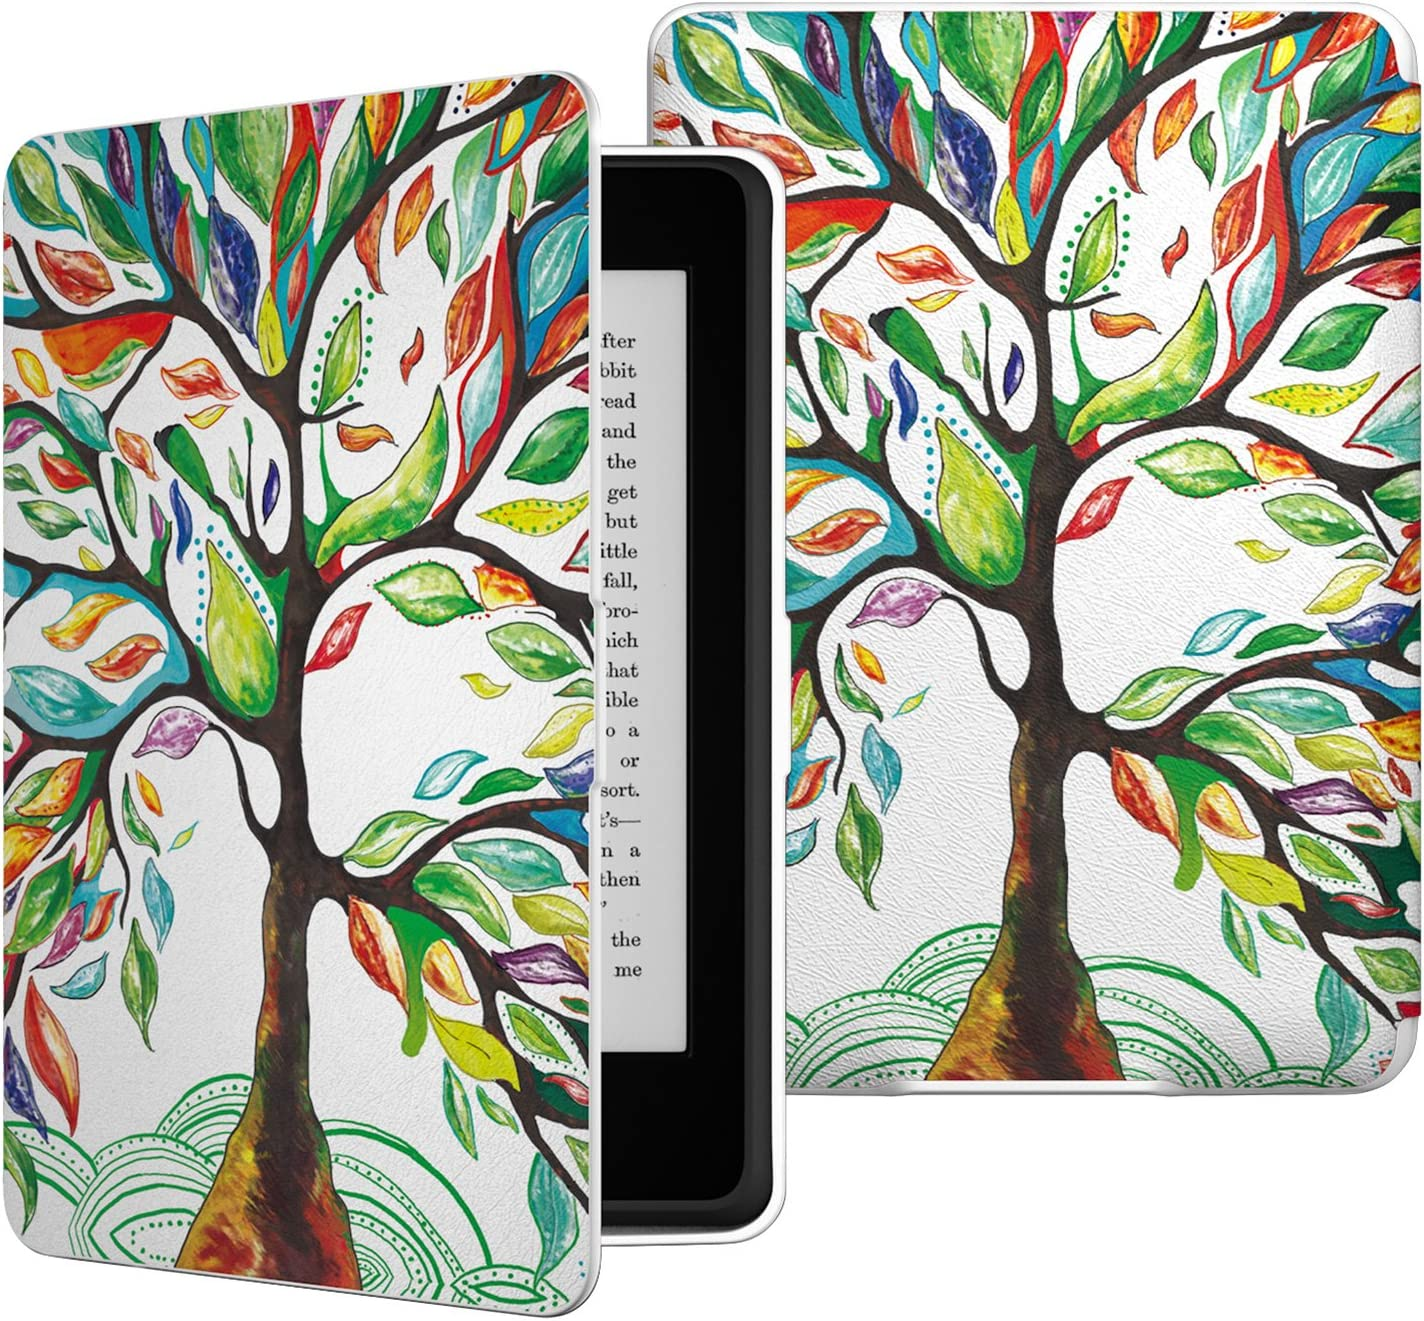 B00CSW4BGW MoKo Case for Kindle Paperwhite, Premium PU Leather Cover with Auto Wake/Sleep Fits All Paperwhite Generations Prior to 2018 (Will not fit All-New Paperwhite 10th Generation), Lucky TREE 81thi4HWbUL